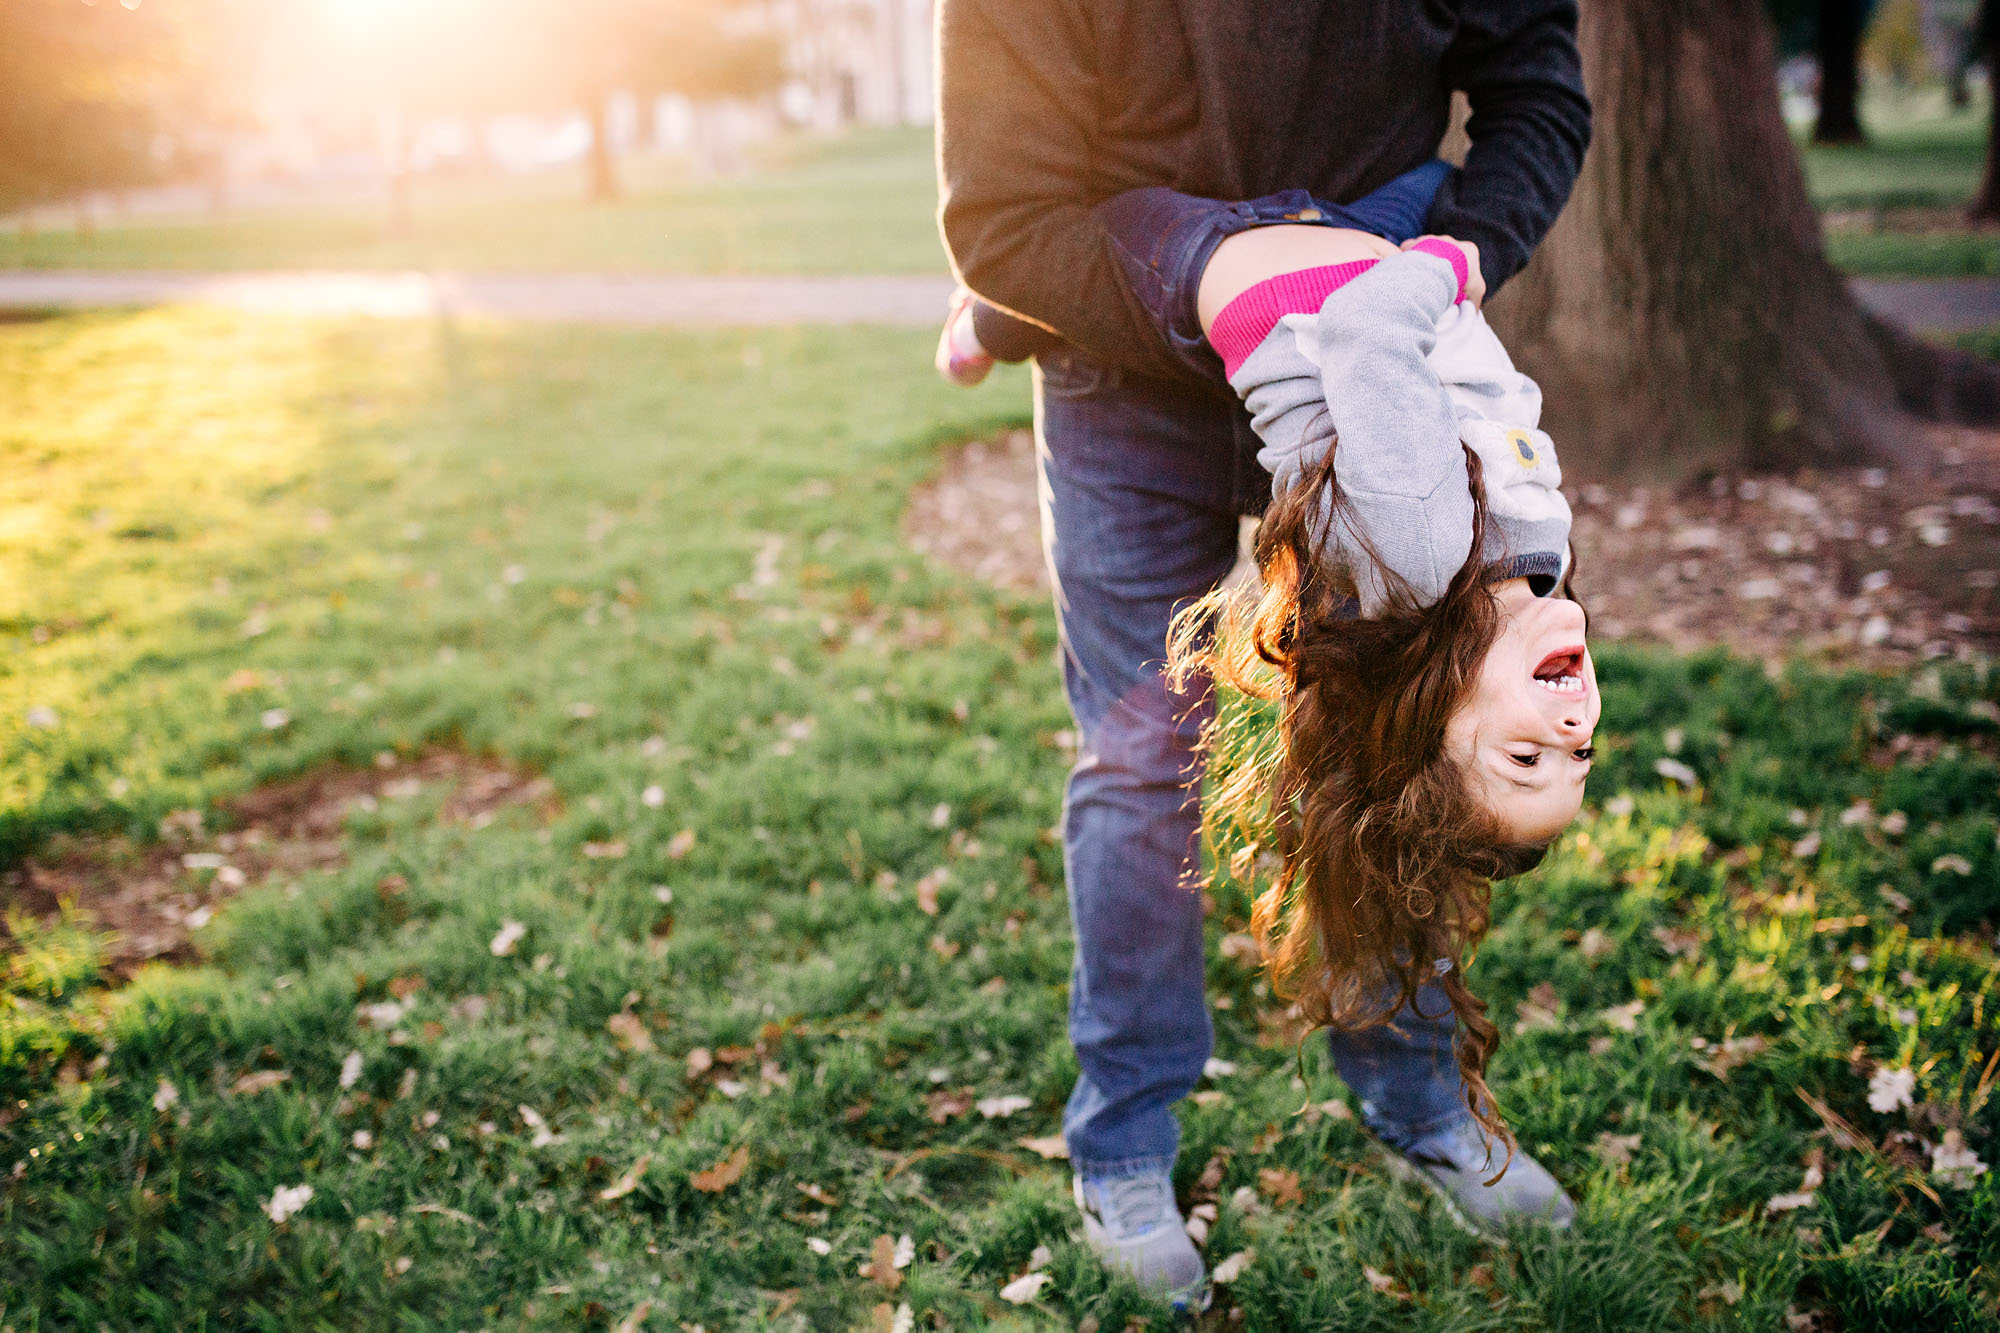 A father dips her daughter playfully during a fun family photo session with Amy Wright Photography in Roseville, California.